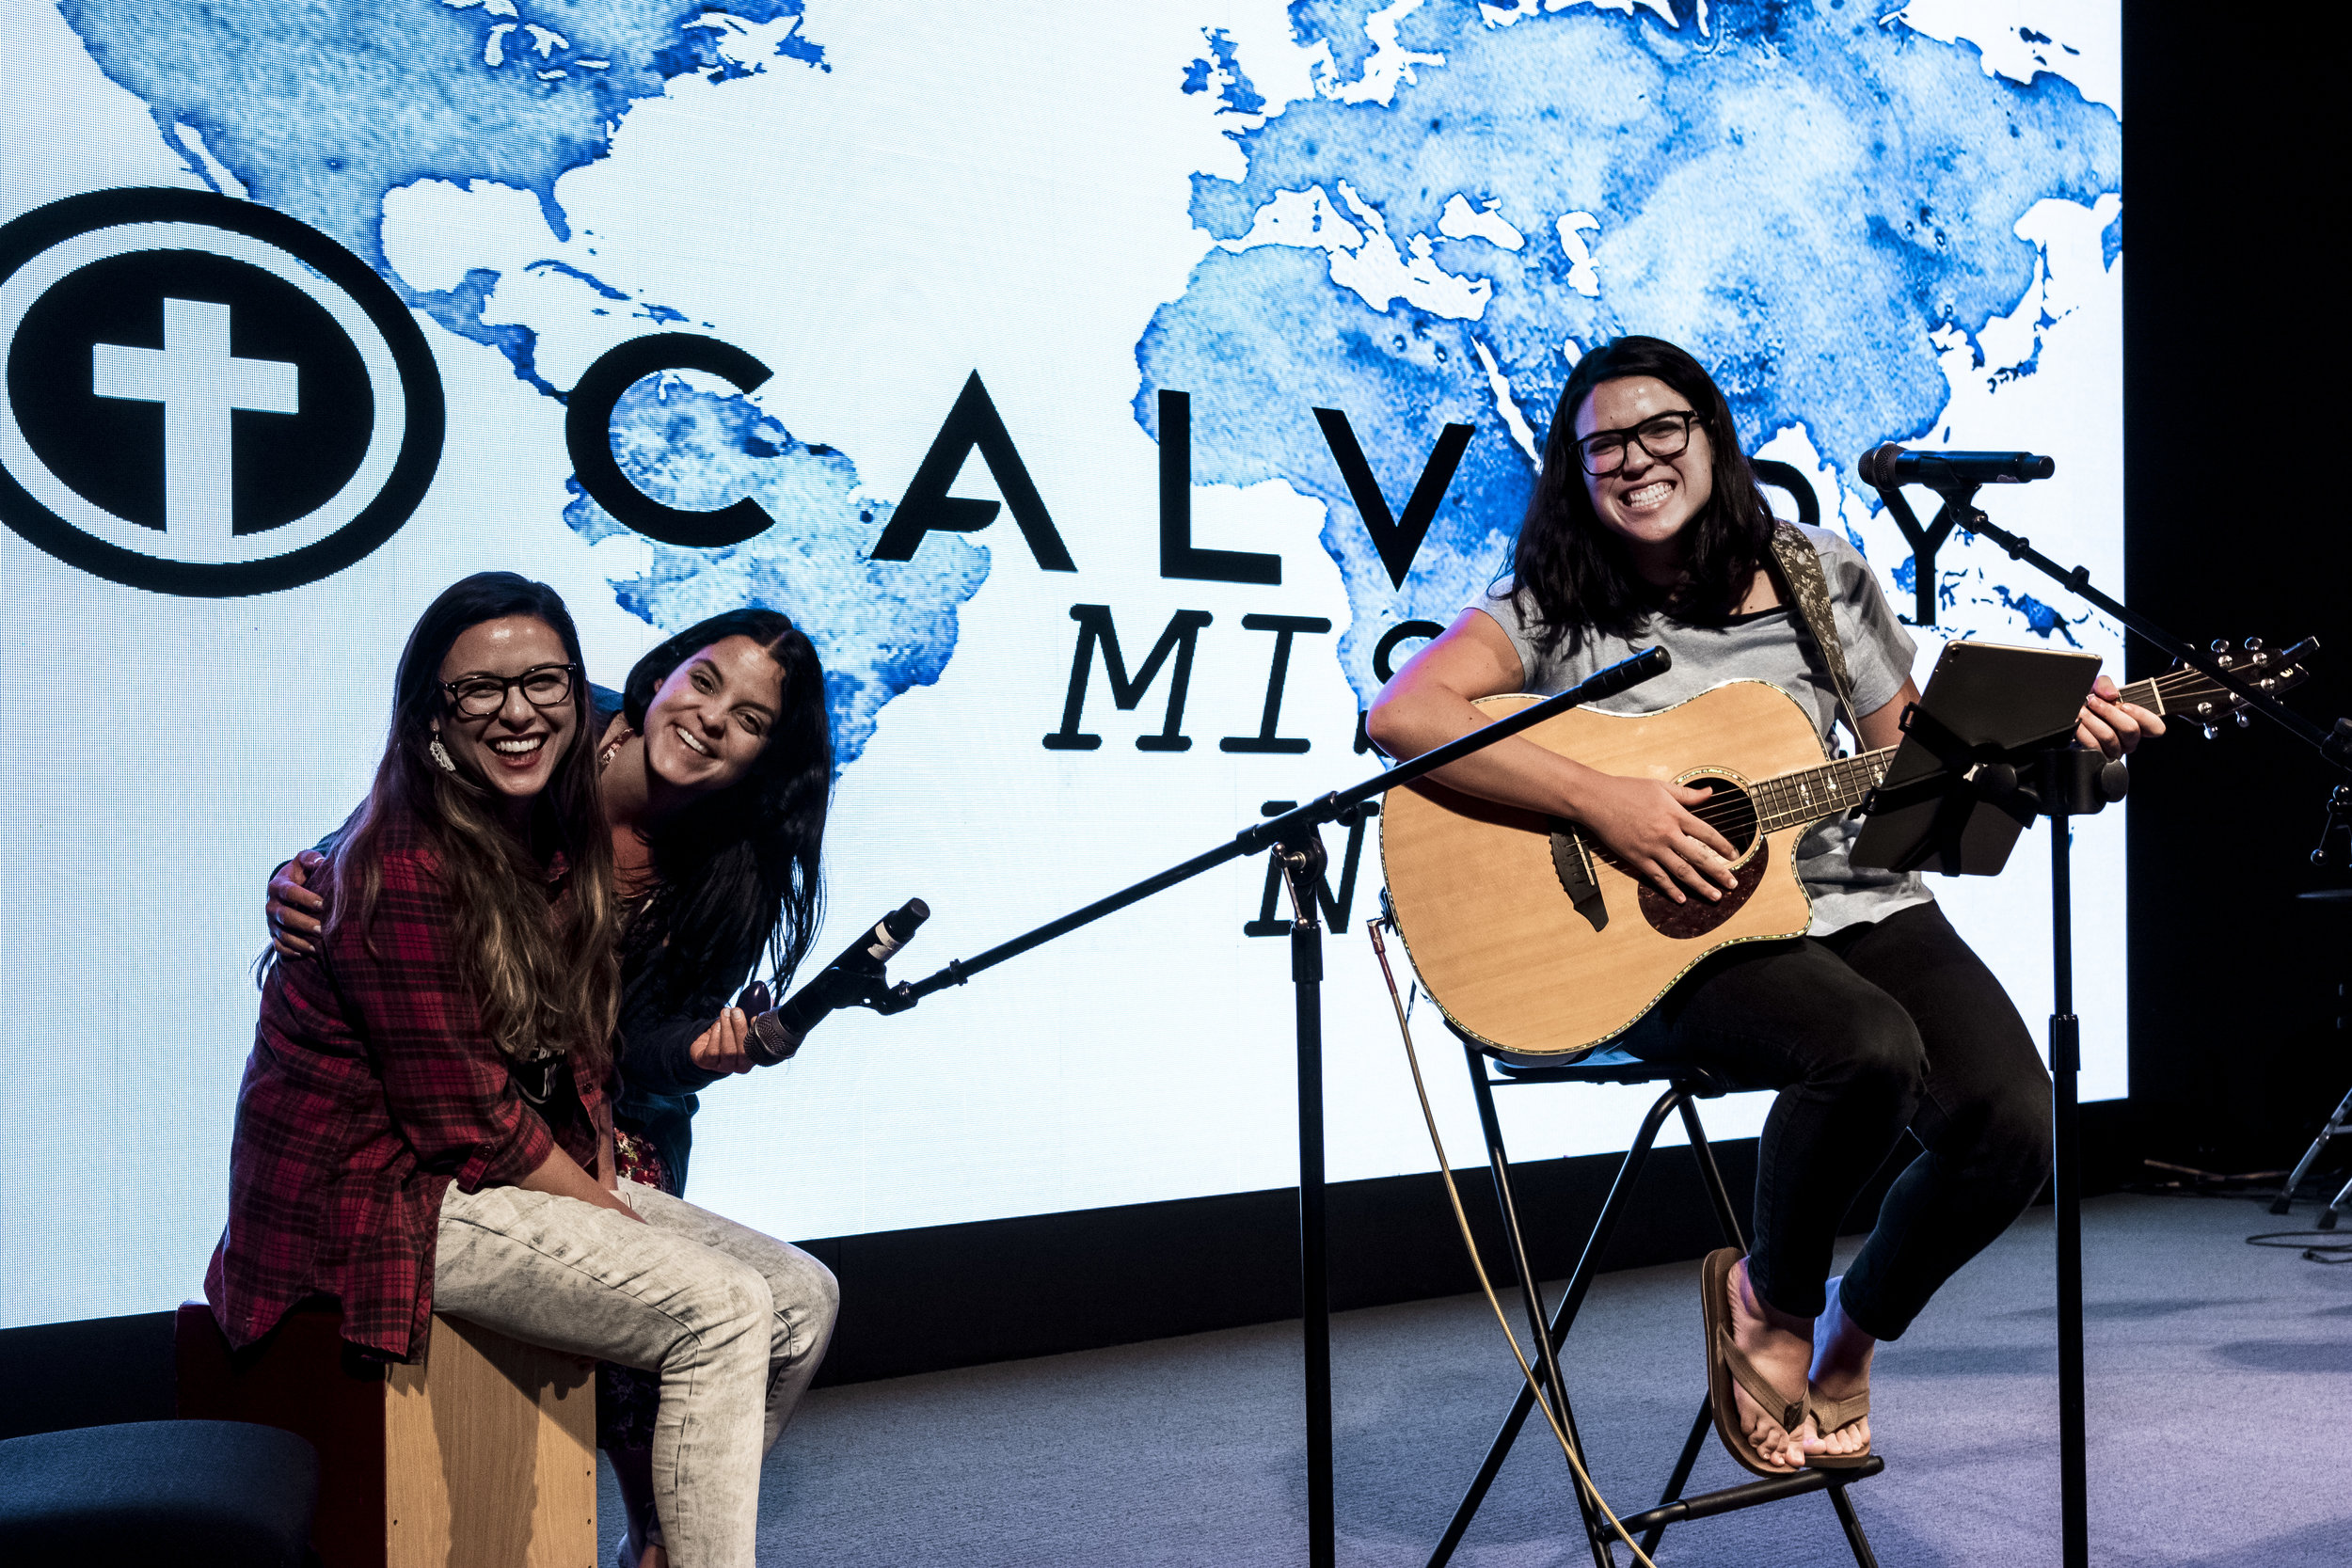 Not only were we blessed with the opportunity to hear from our missionaries, but we were also blessed with a sweet time of worship by 2 of Pastor Gary's daughters, Courtney and Elizabeth and our Women's Worship Leader, Christina!